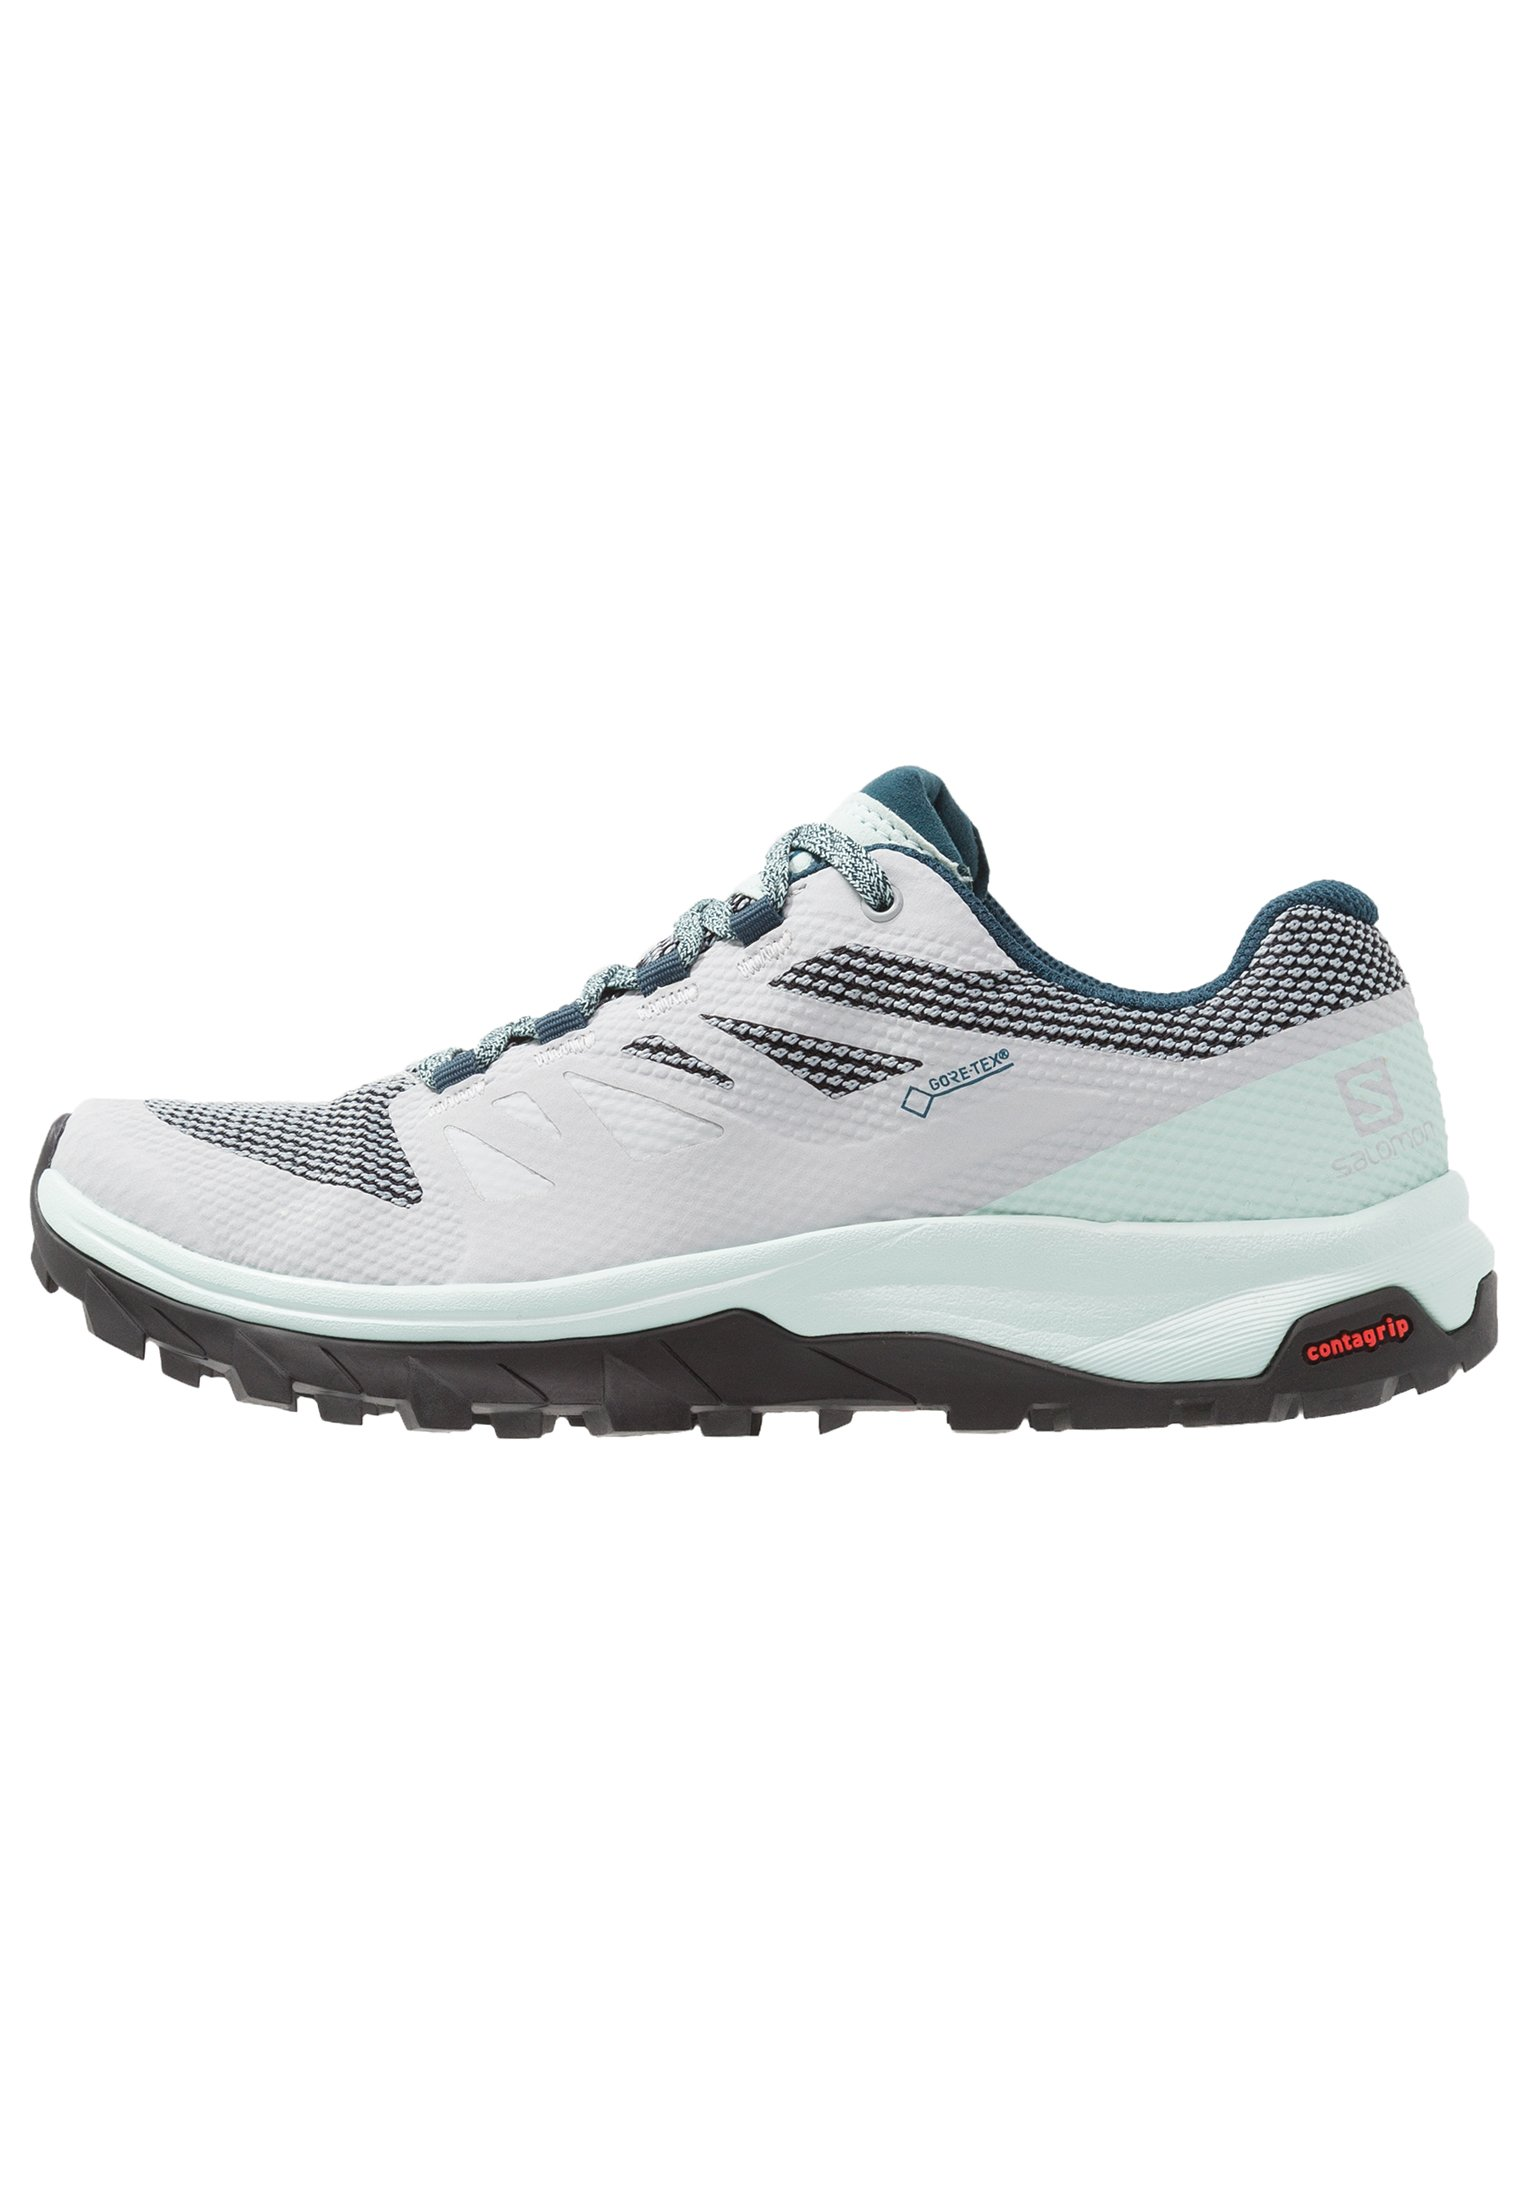 Salomon OUTLINE GTX Zapatillas de senderismo graphite